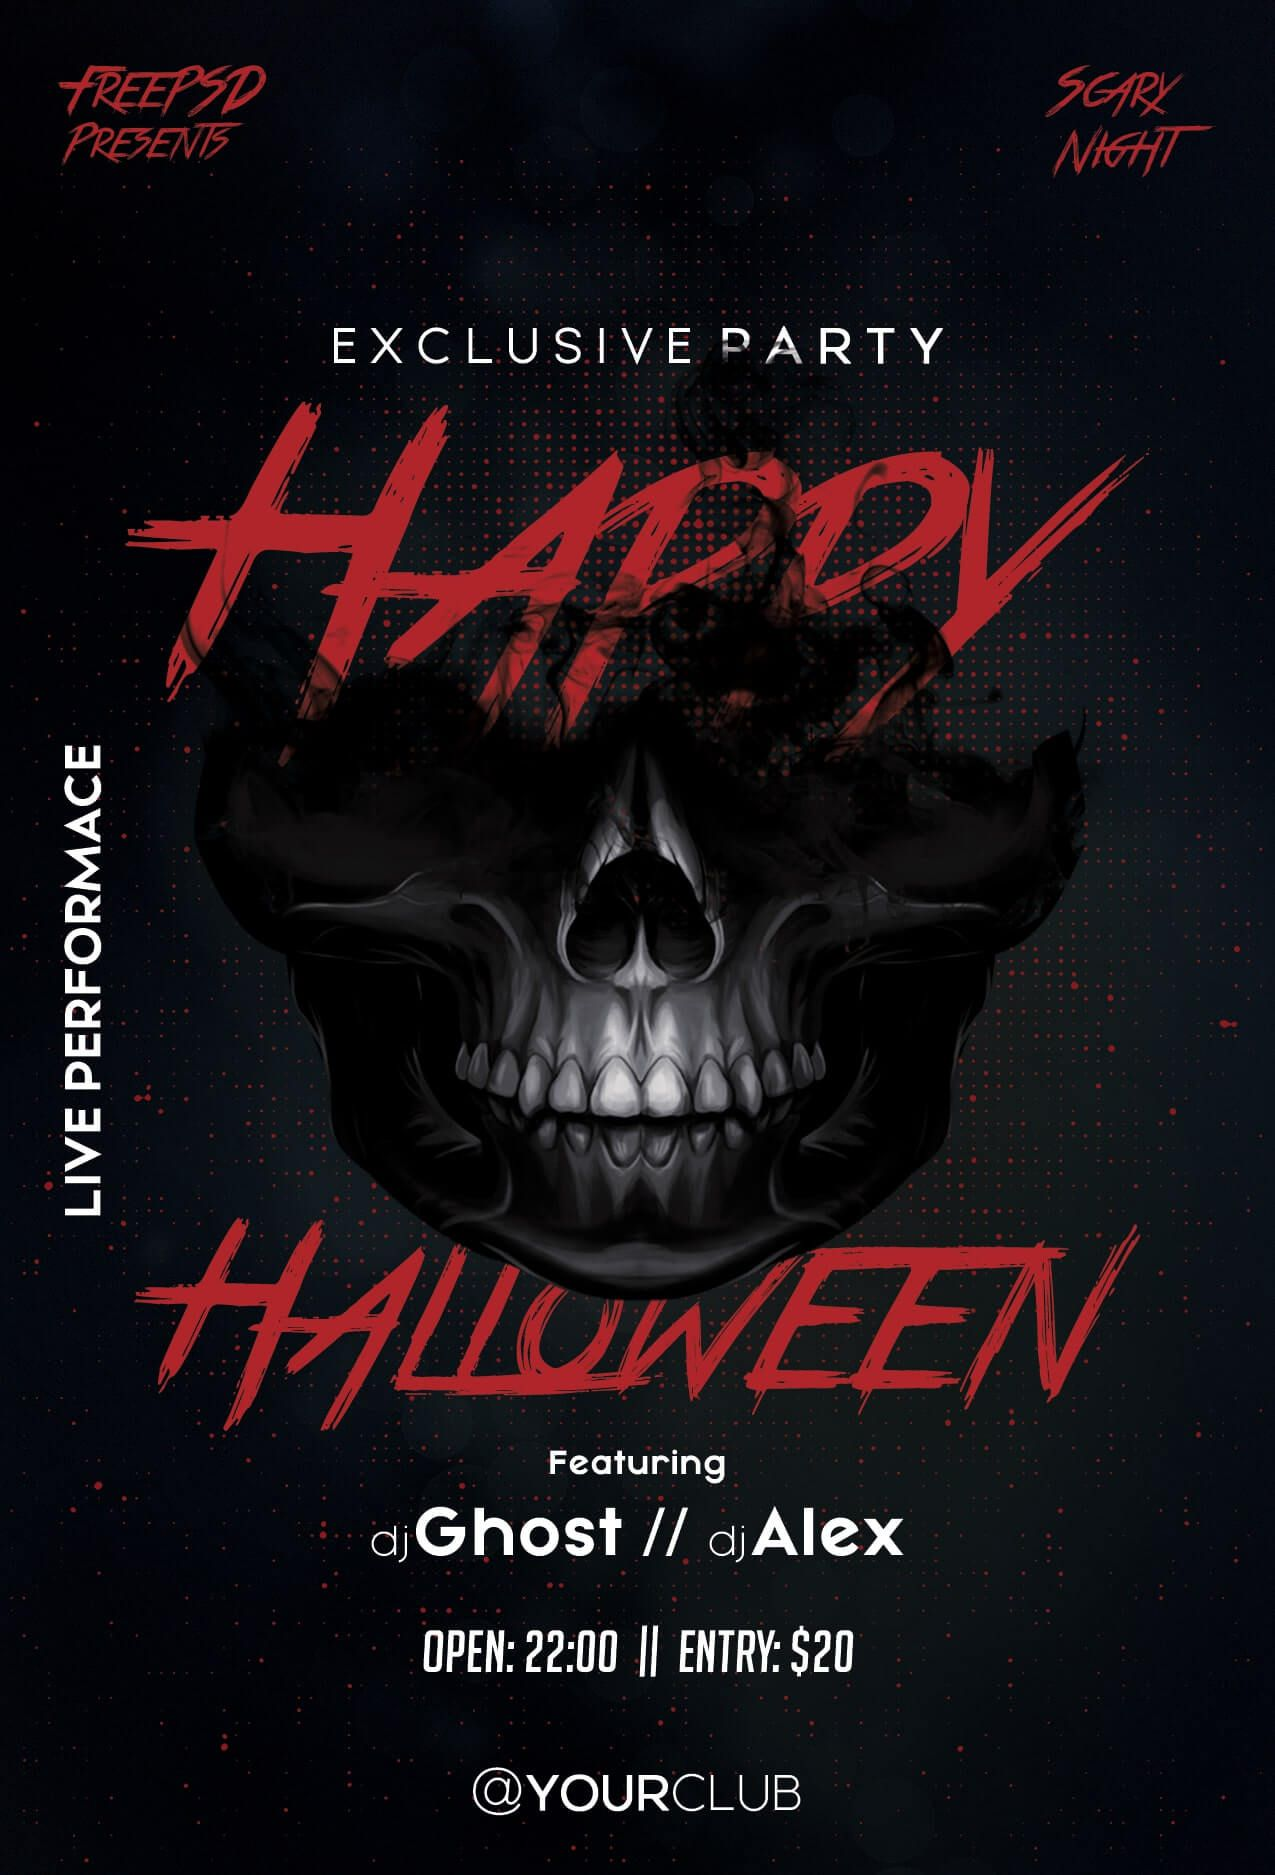 007 Remarkable Free Halloween Party Flyer Template Inspiration  TemplatesFull